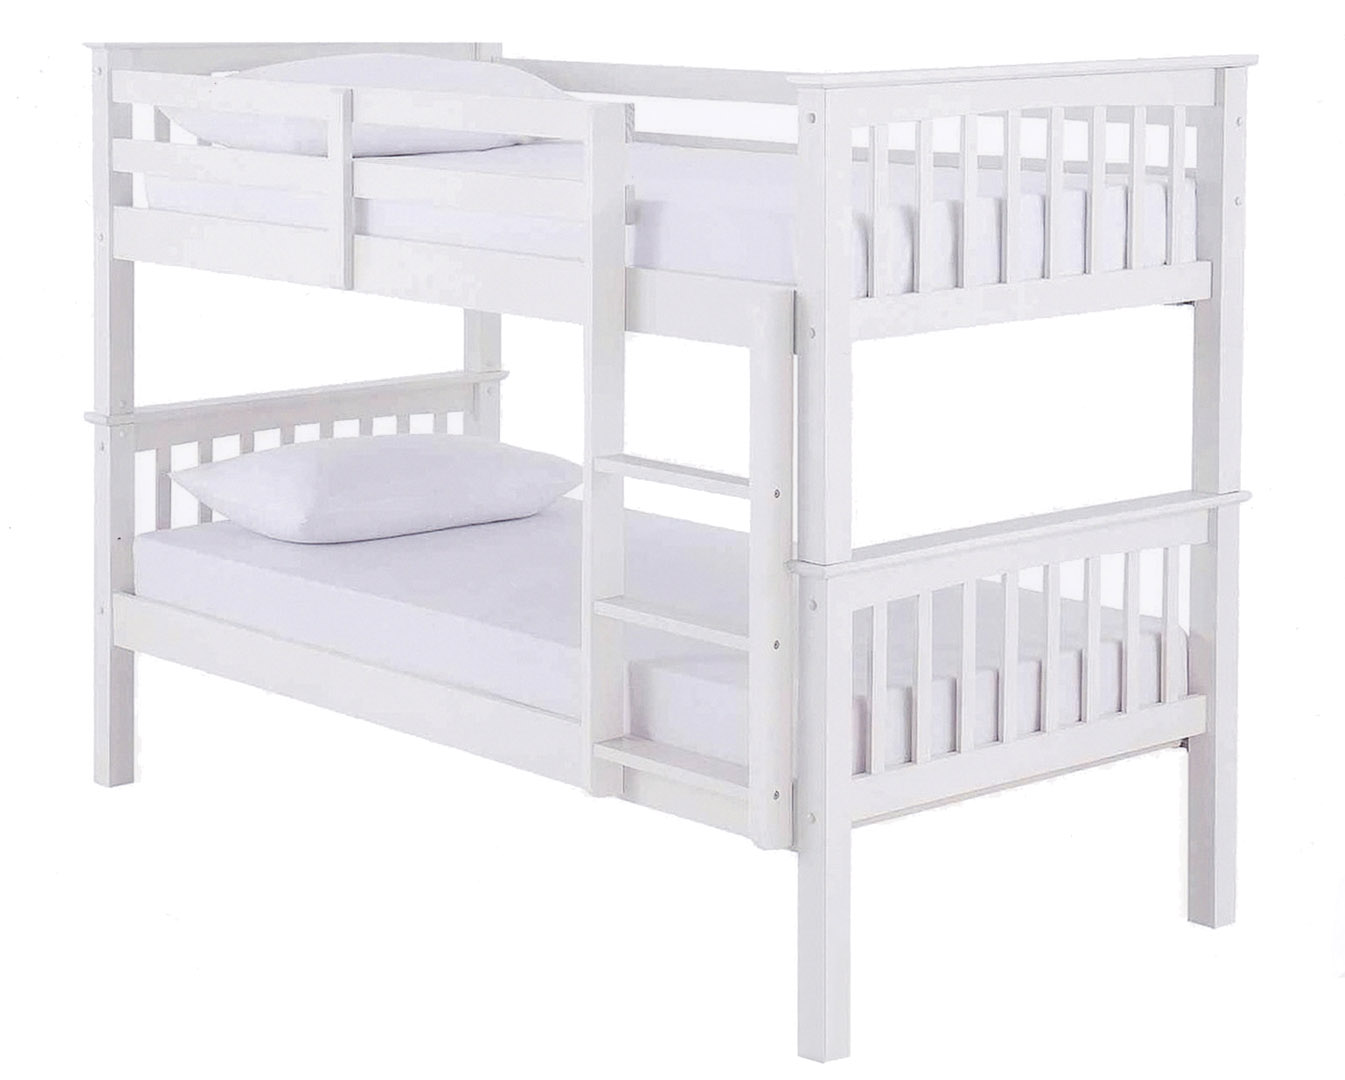 Picture of: White Wood Bunk Beds Frame Blackpool Bed Centre